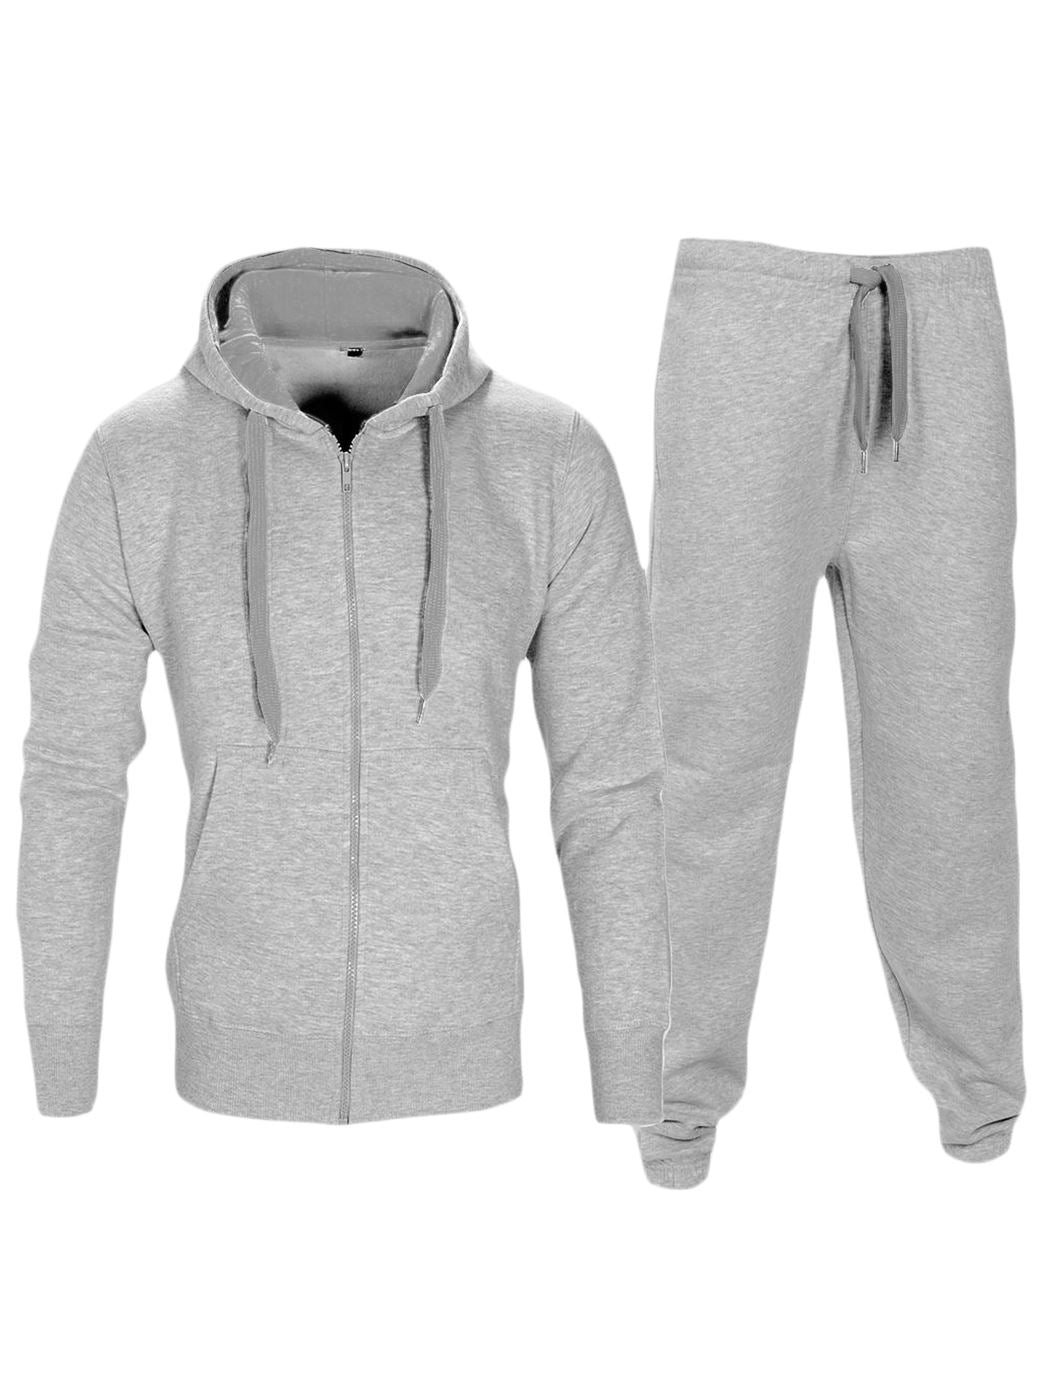 Wholesale Drawstring Fleece Set Hoodie Top Bottoms Tracksuit (Pack Of 8)